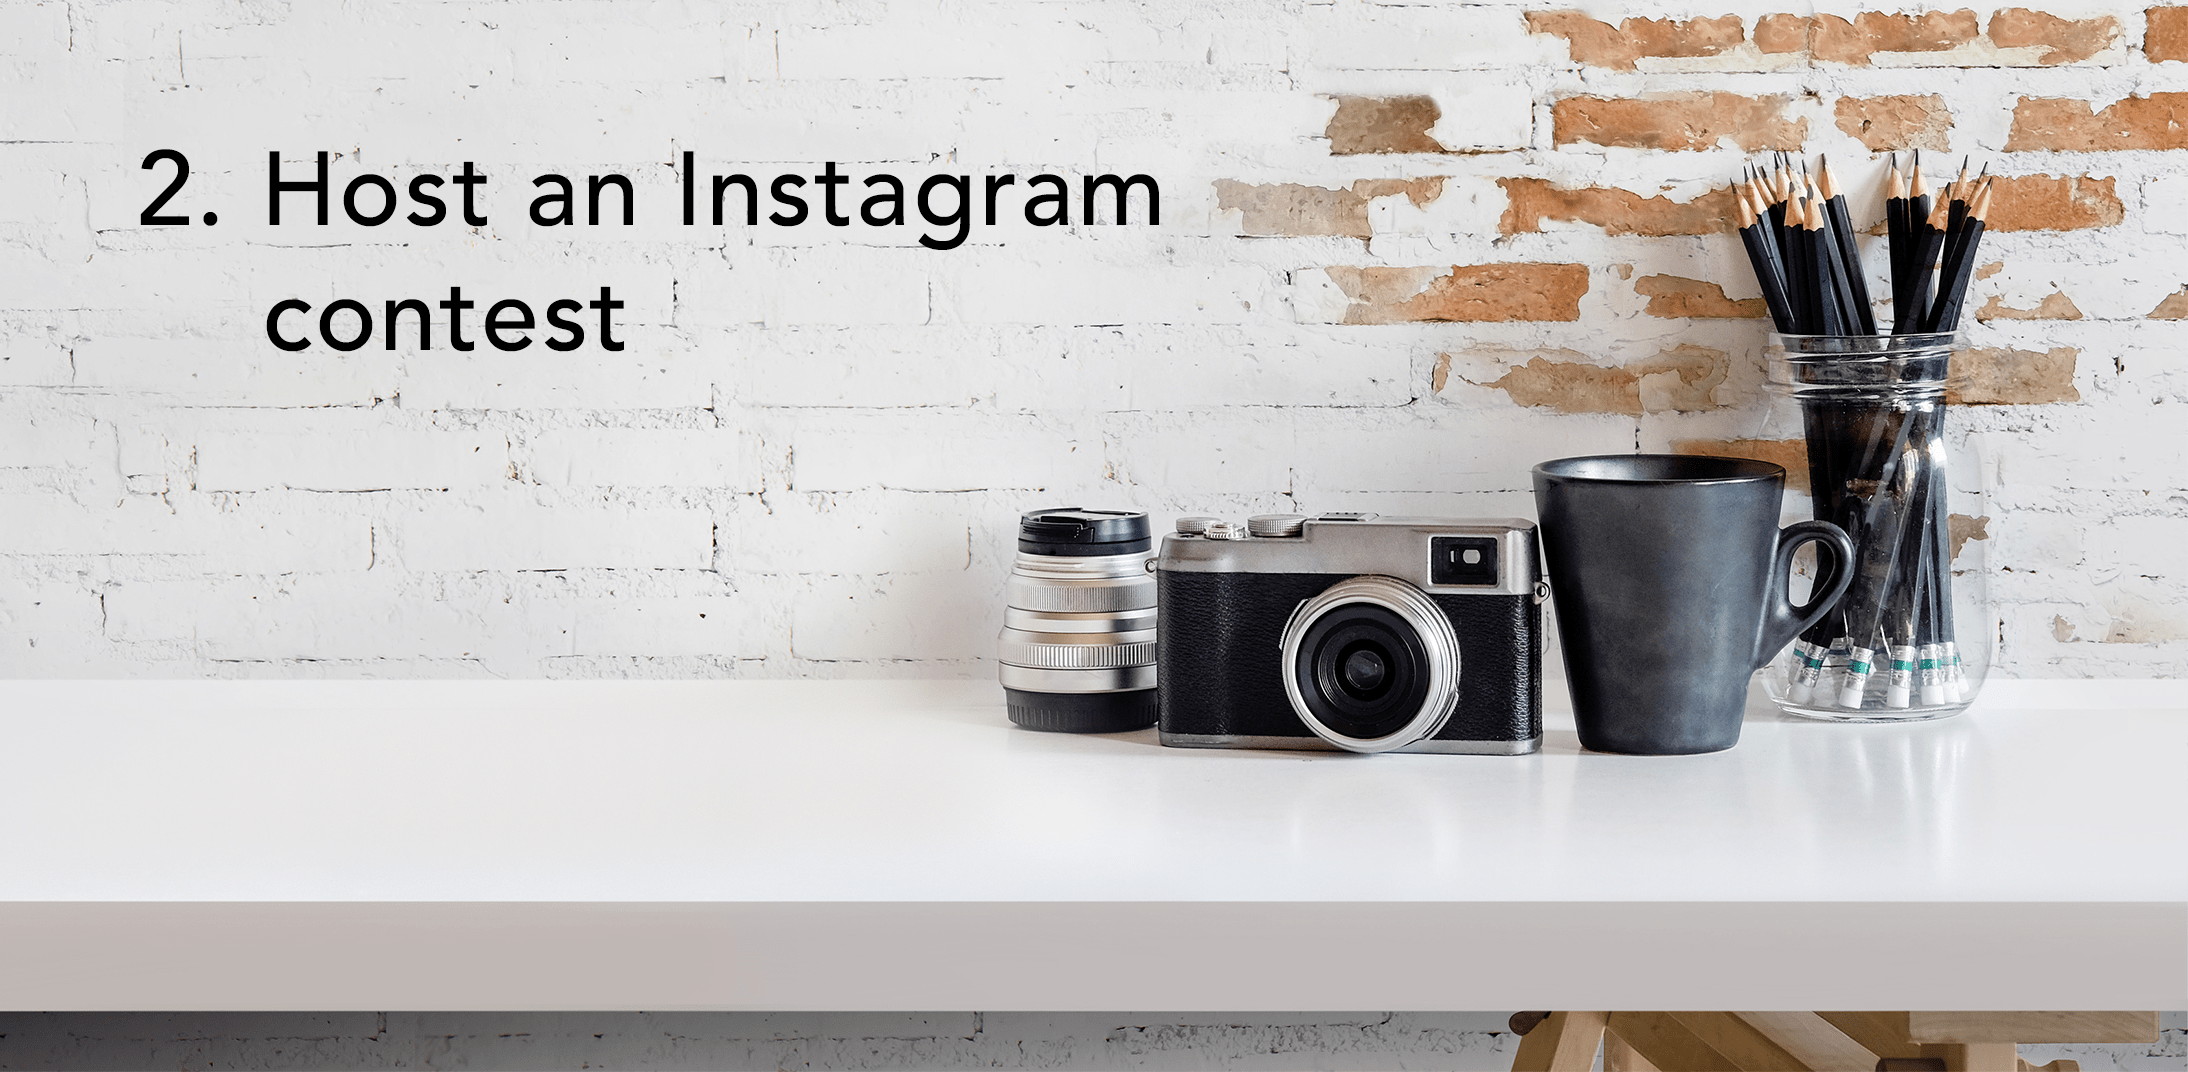 Apartment Marketing Tips - Host an Instagram contest